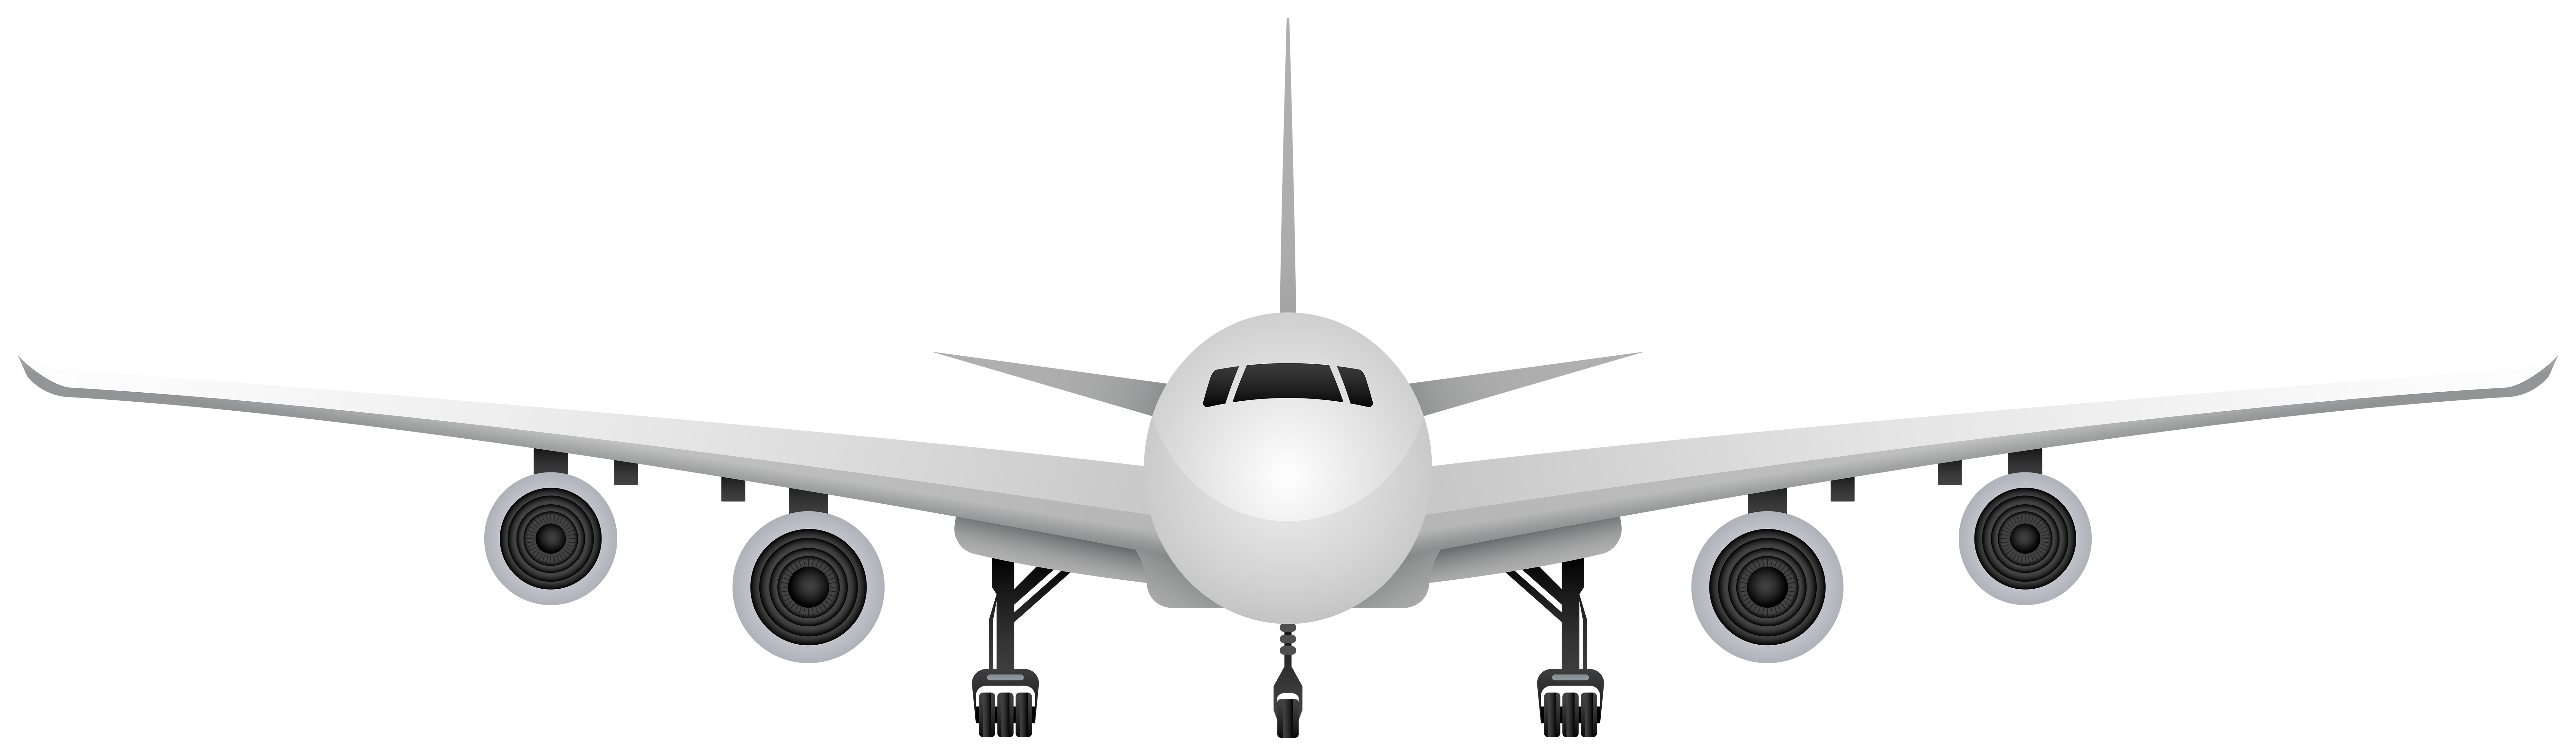 Airplane clipart name. Png clip art image